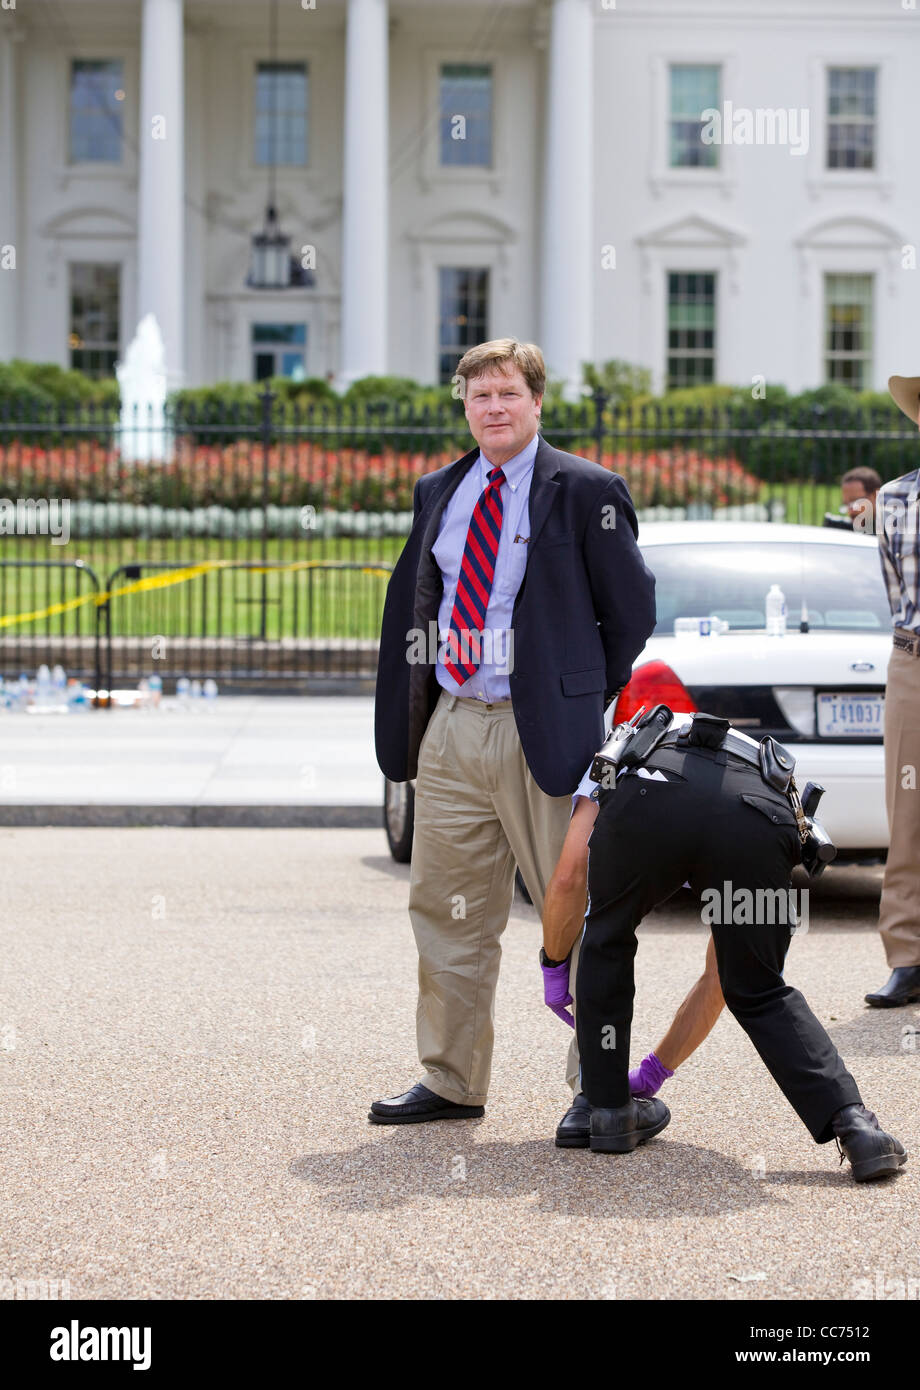 Detained demonstrator getting frisked for processing in front of the White House - Stock Image